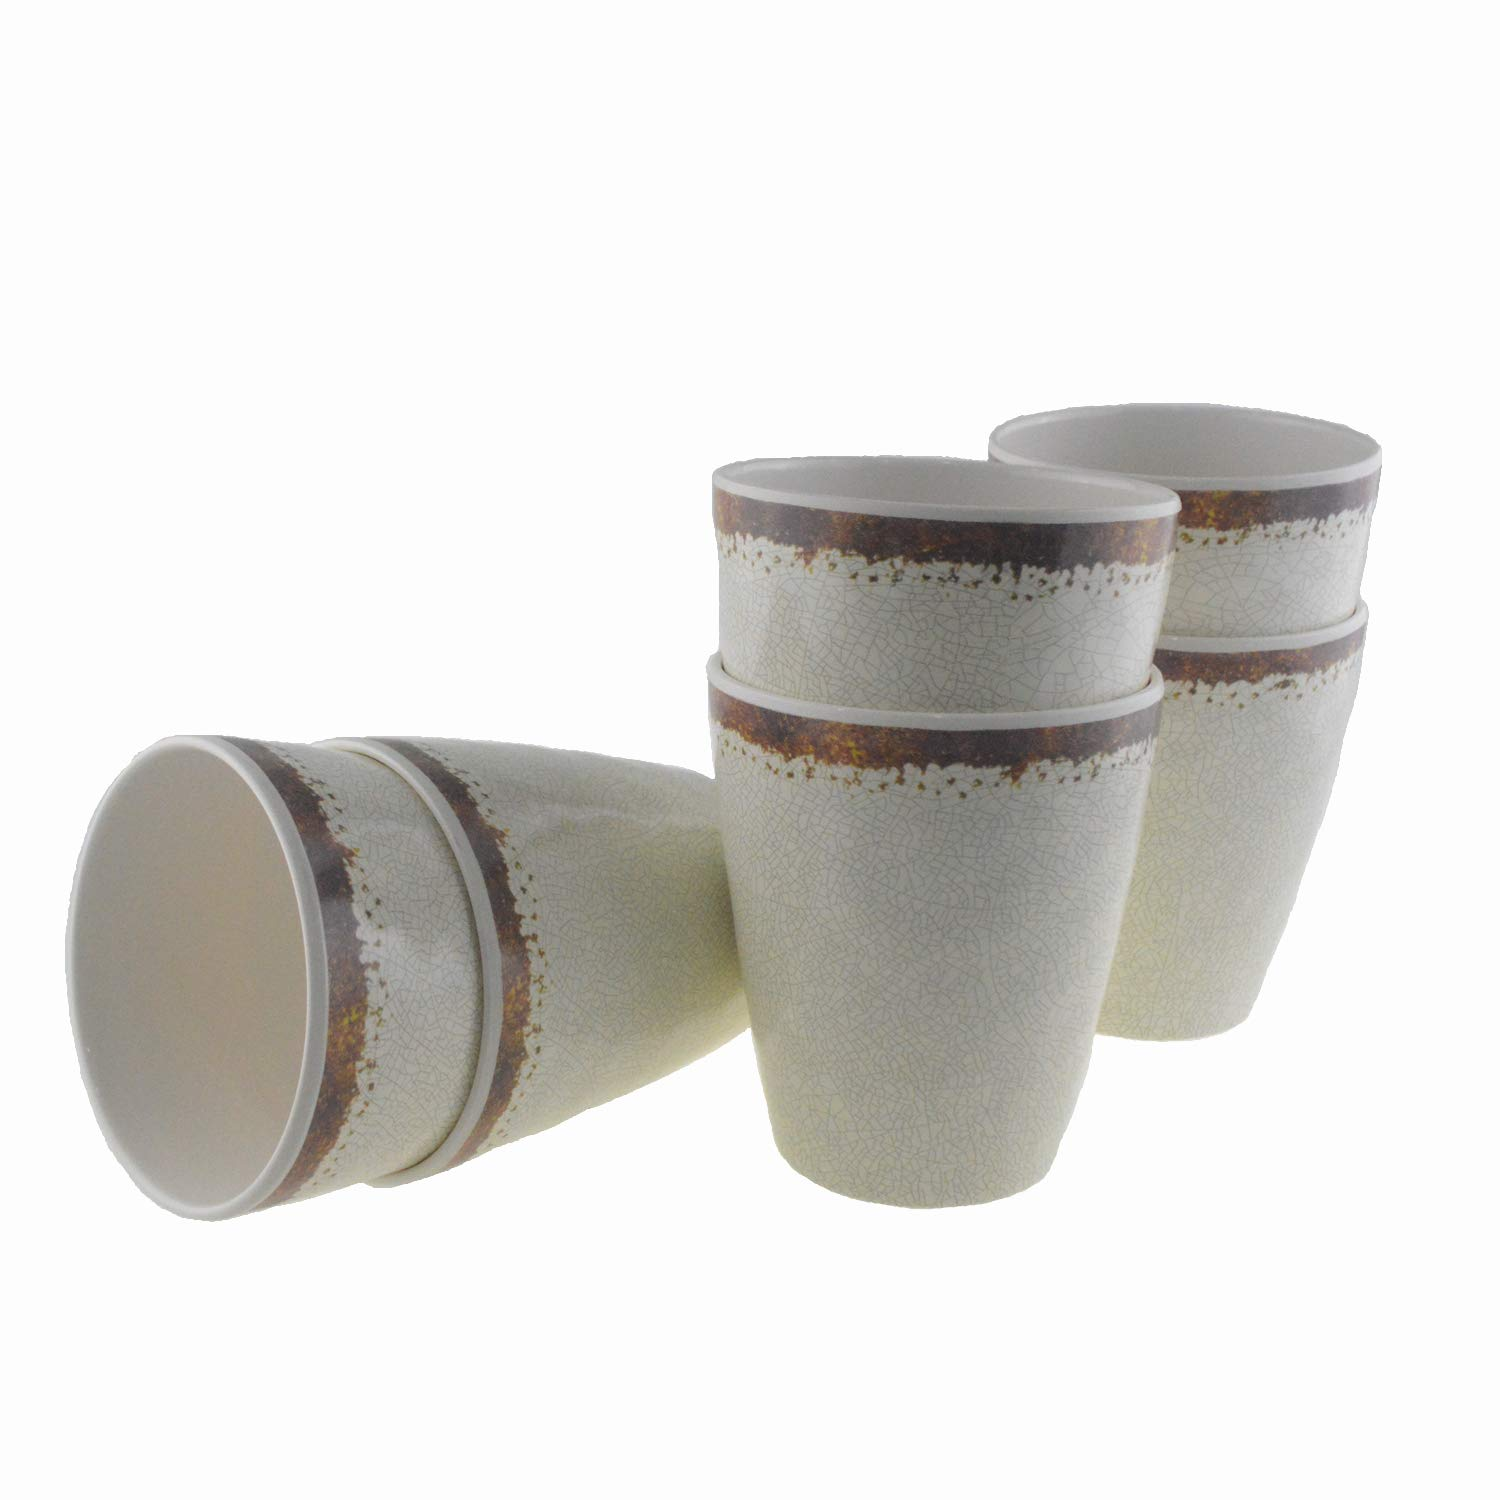 Melamine 6 Pcs Rustic Cups for Indoor Outdoor Use,Lightweight and Break-resistant Service for 6